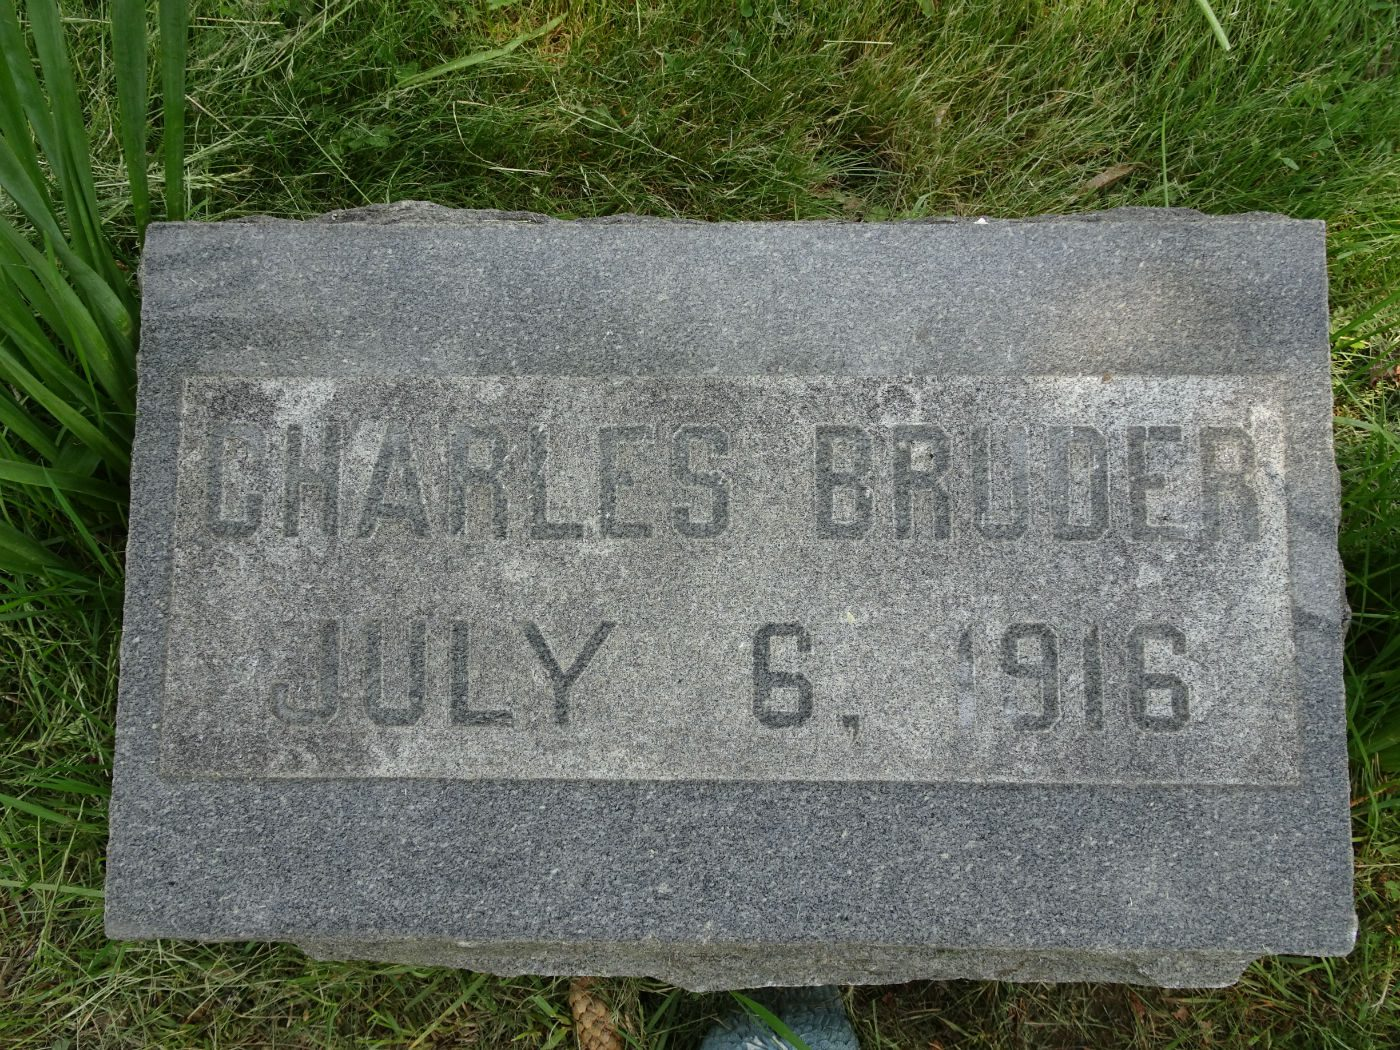 close up of a headstone